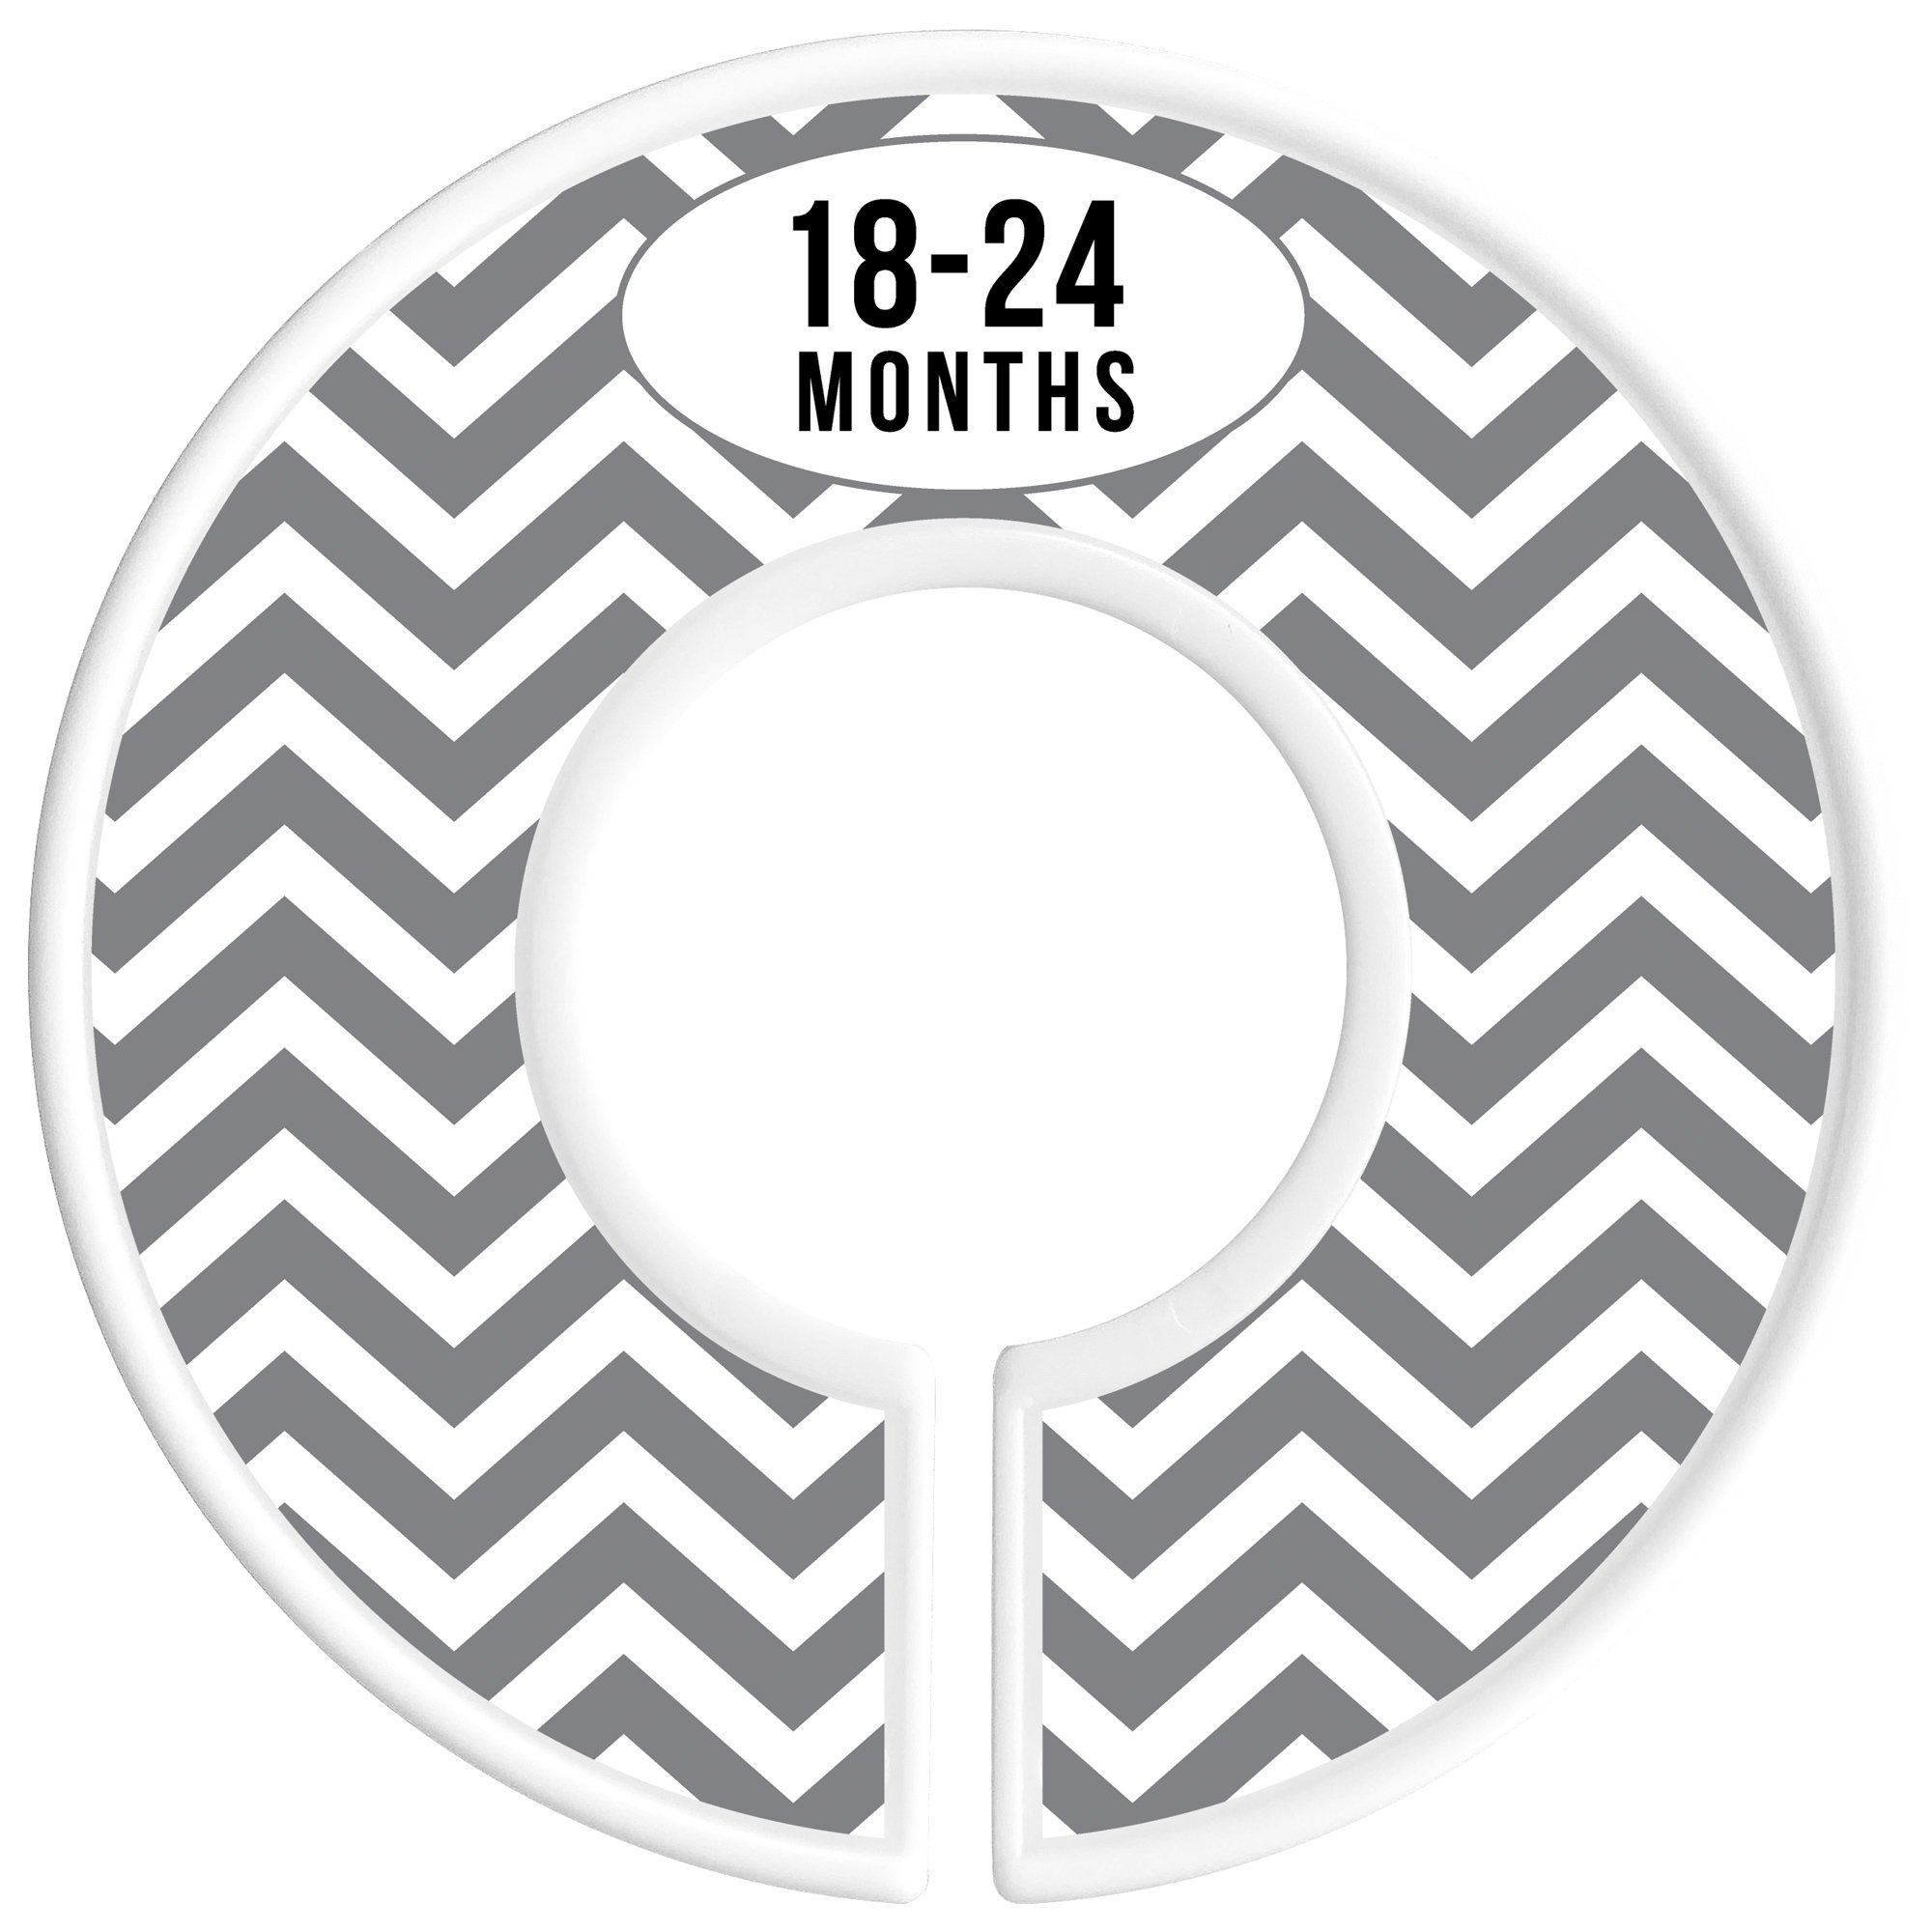 Delicush Baby Closet Dividers, Stripe, Chevron, Set of 6 Size Organizers, Nursery Closet Organizers, Baby Size Dividers, Glossy Finish, Boy, Girl (Grey) by DELICUSH (Image #8)